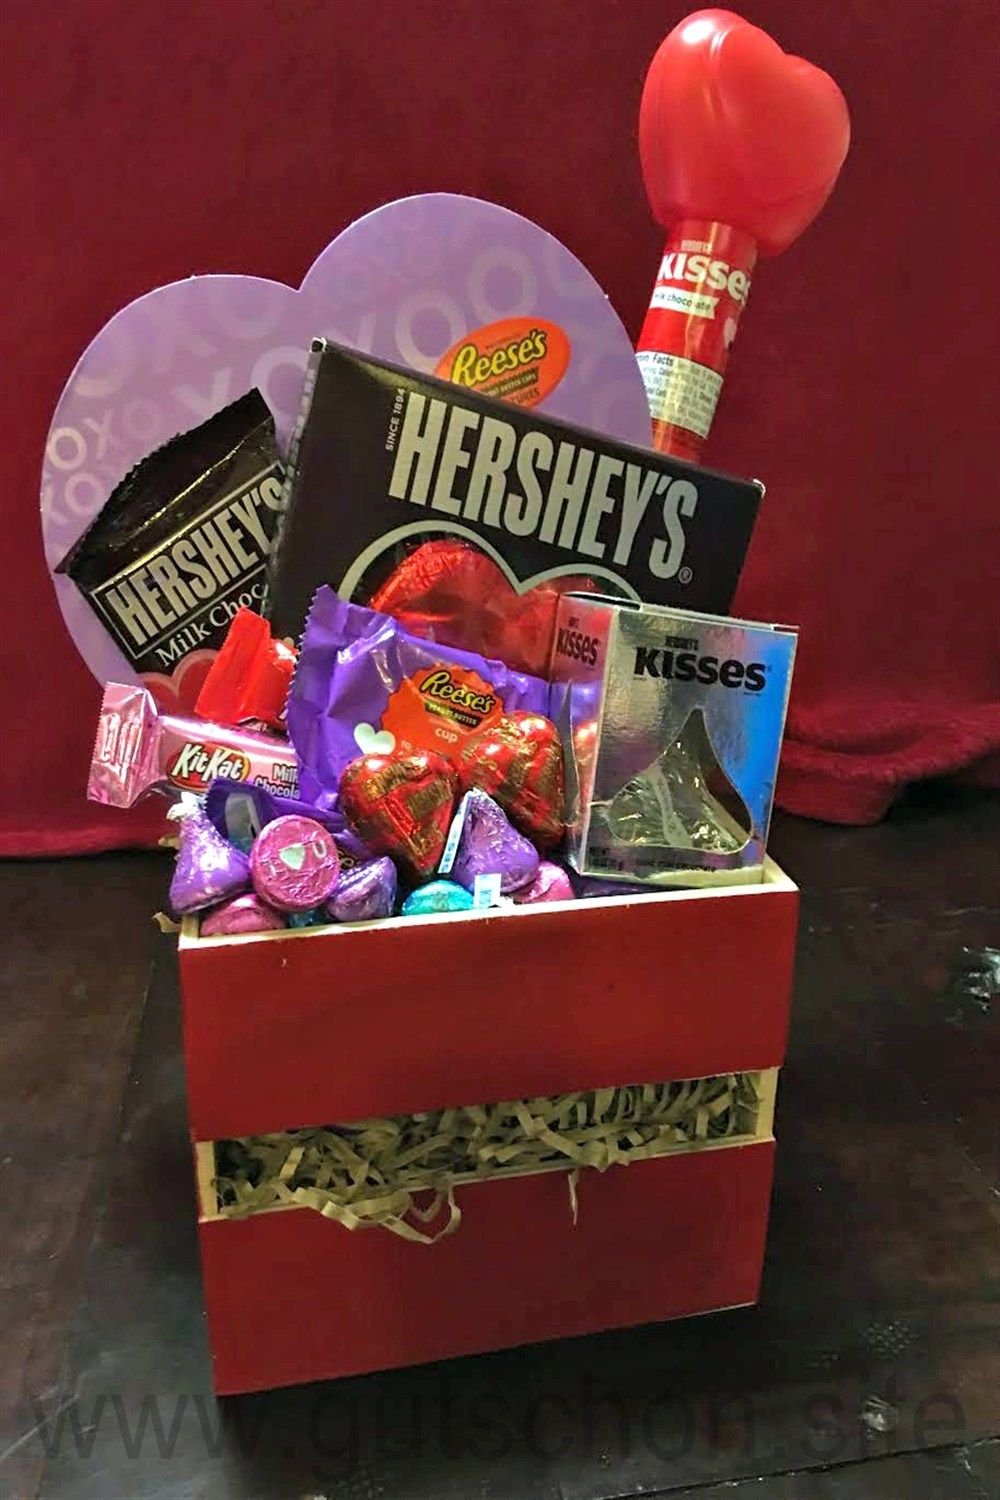 Unique Valentines Day Gifts For Him 2019 In 2020 Unique Valentines Day Gifts Valentines Day Gifts For Him Best Valentine S Day Gifts